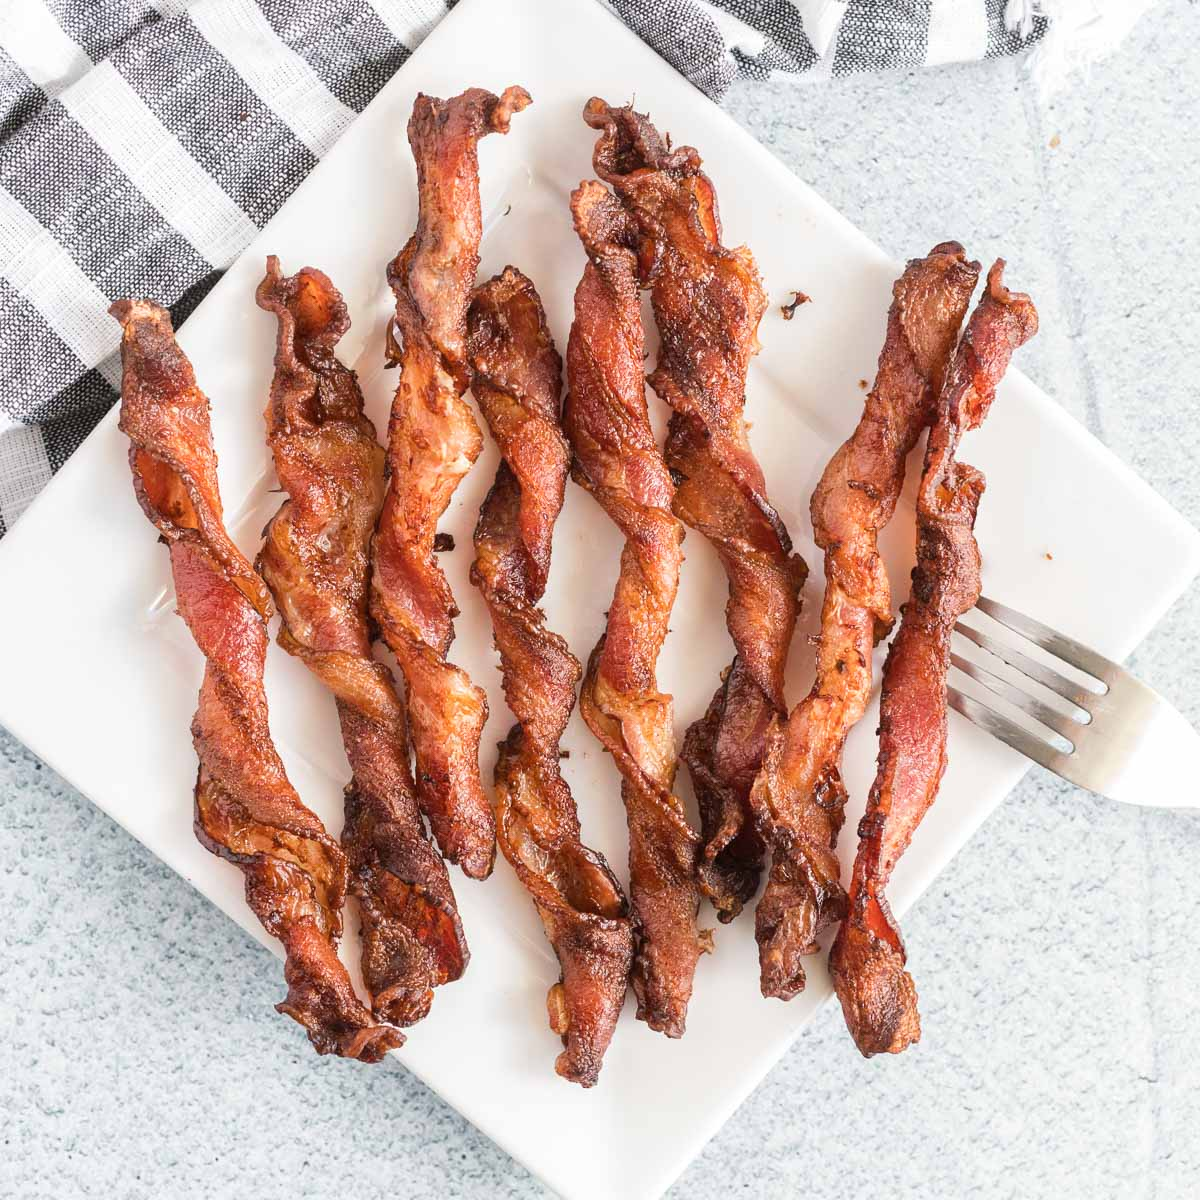 Cooked twisted bacon on a square white plate with a fork.